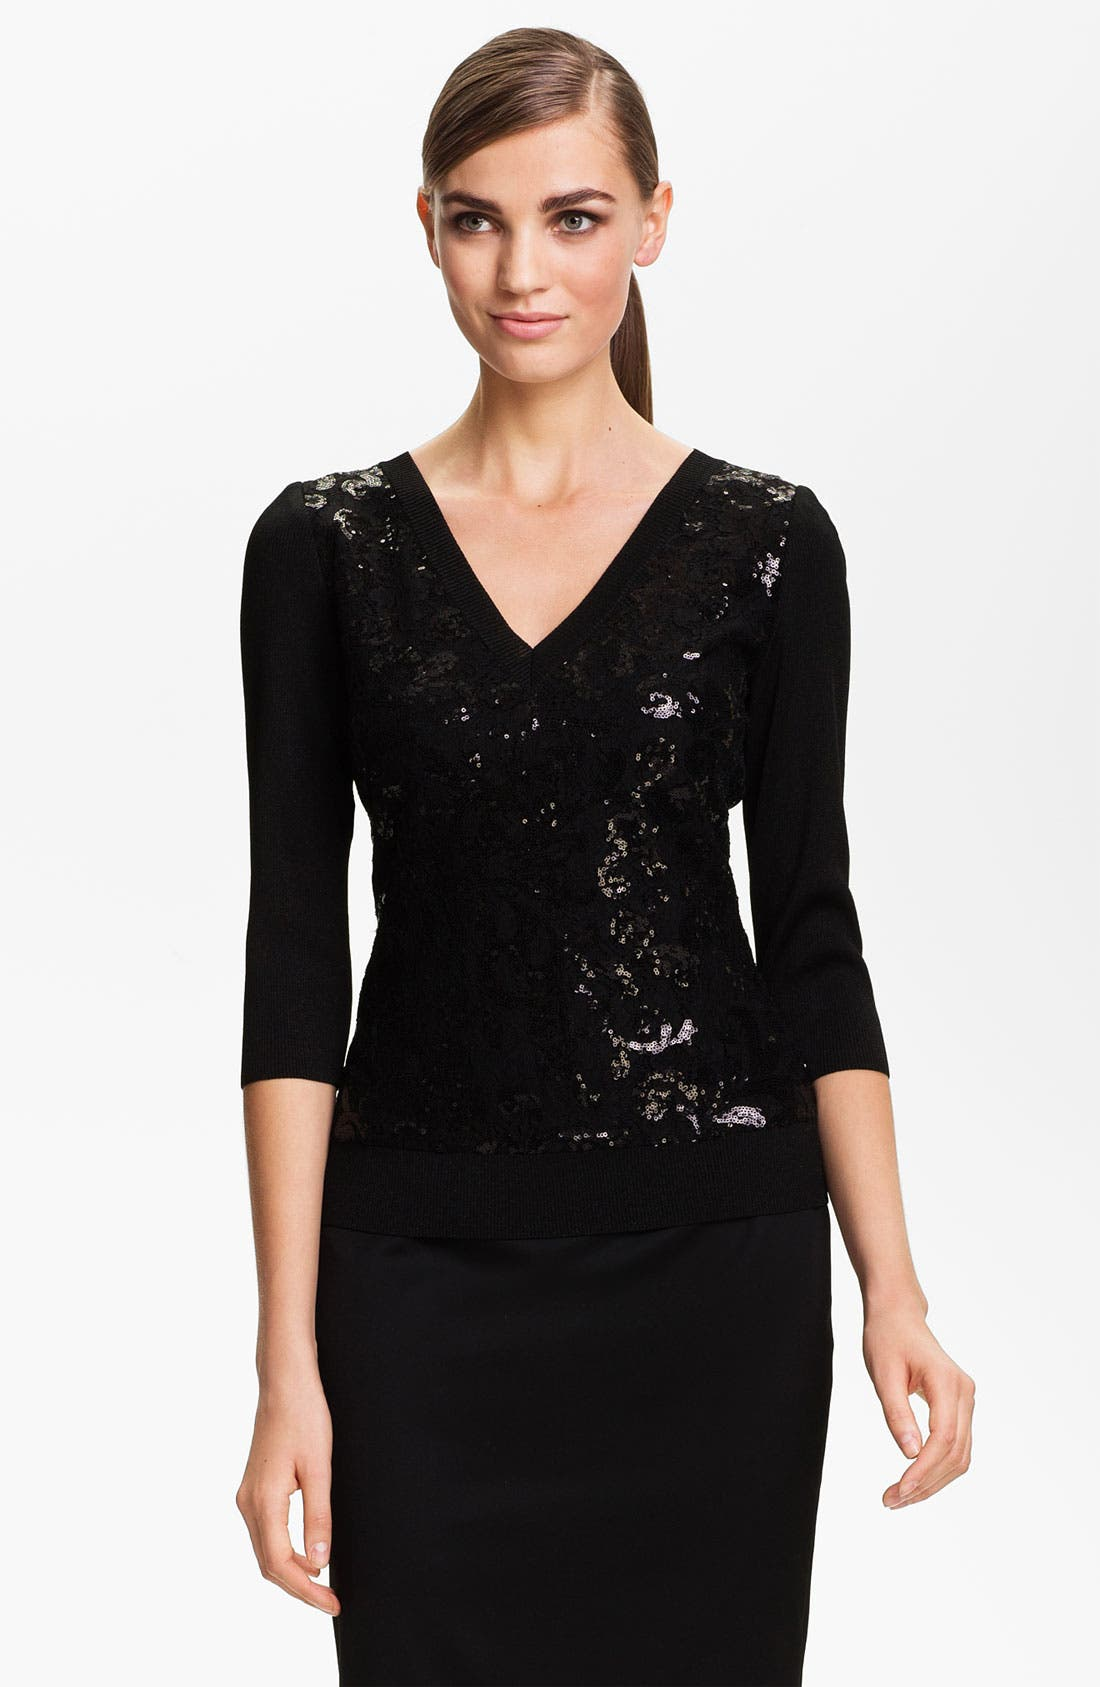 Alternate Image 1 Selected - St. John Collection Lace Front Shimmer Rib Knit Sweater